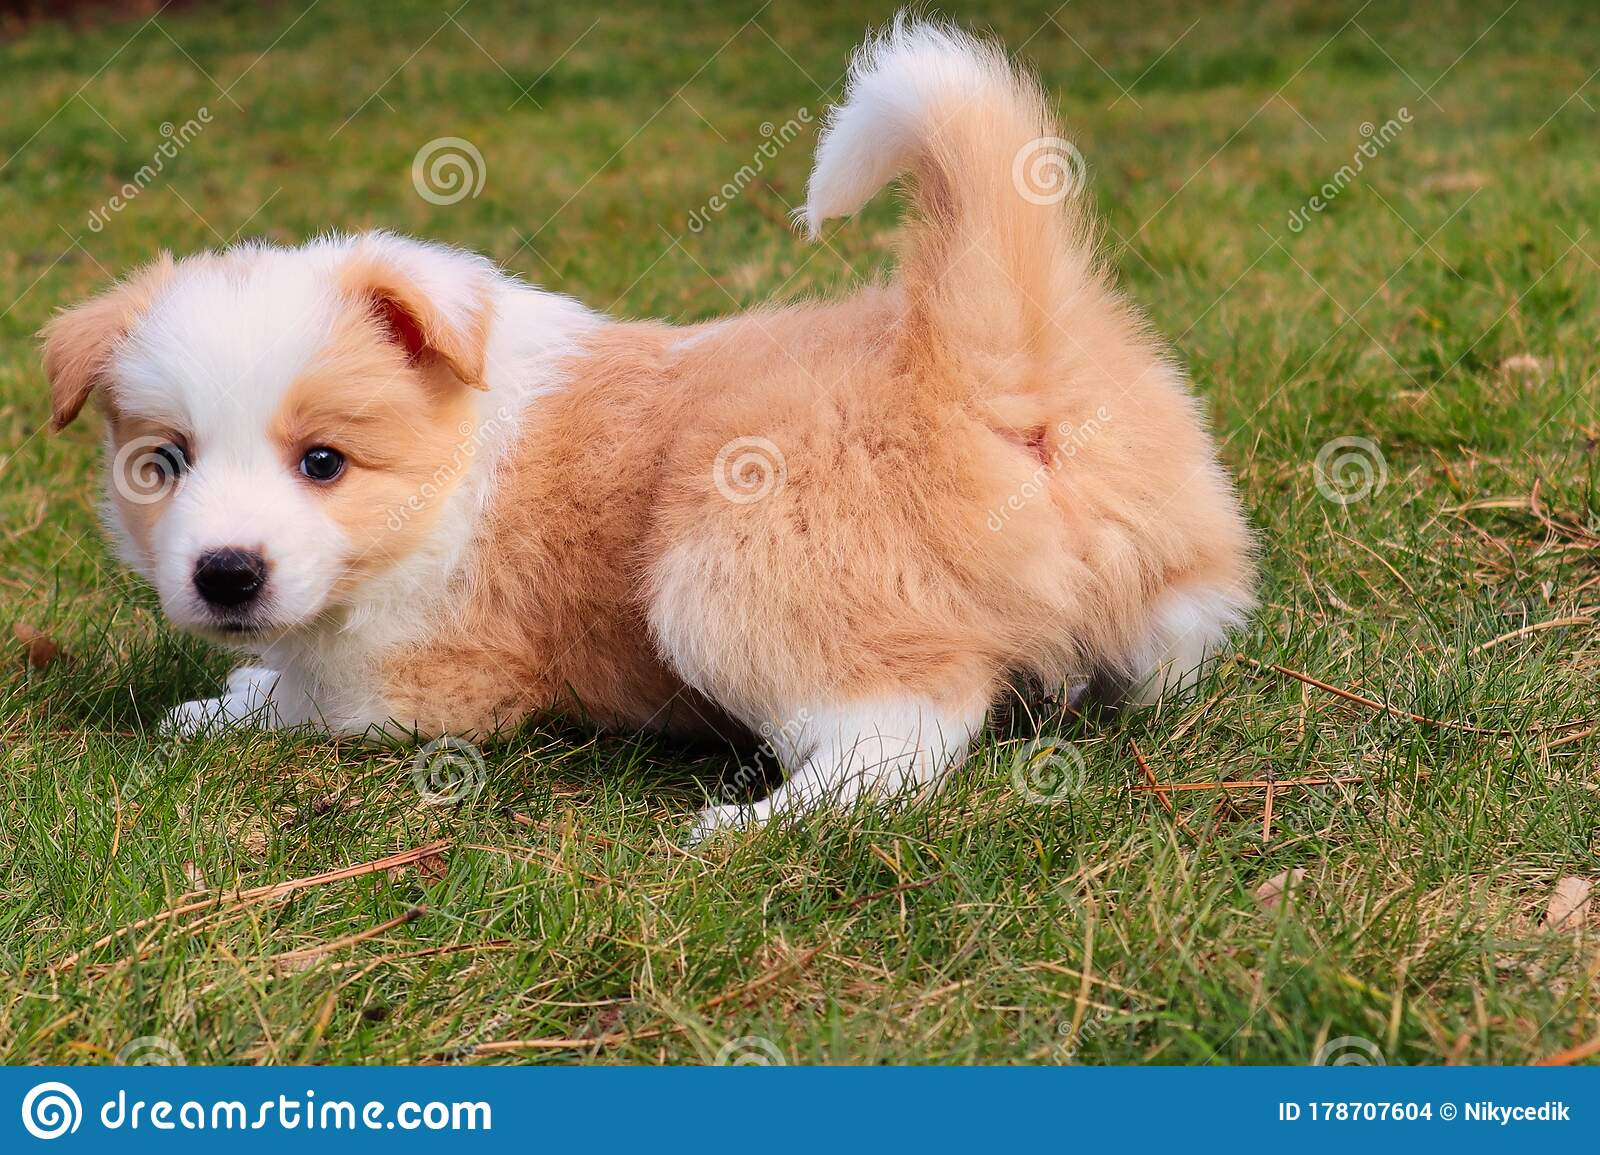 Ee Red Border Collie Puppy Playing On A Garden Stock Photo Image Of Collie Golden 178707604